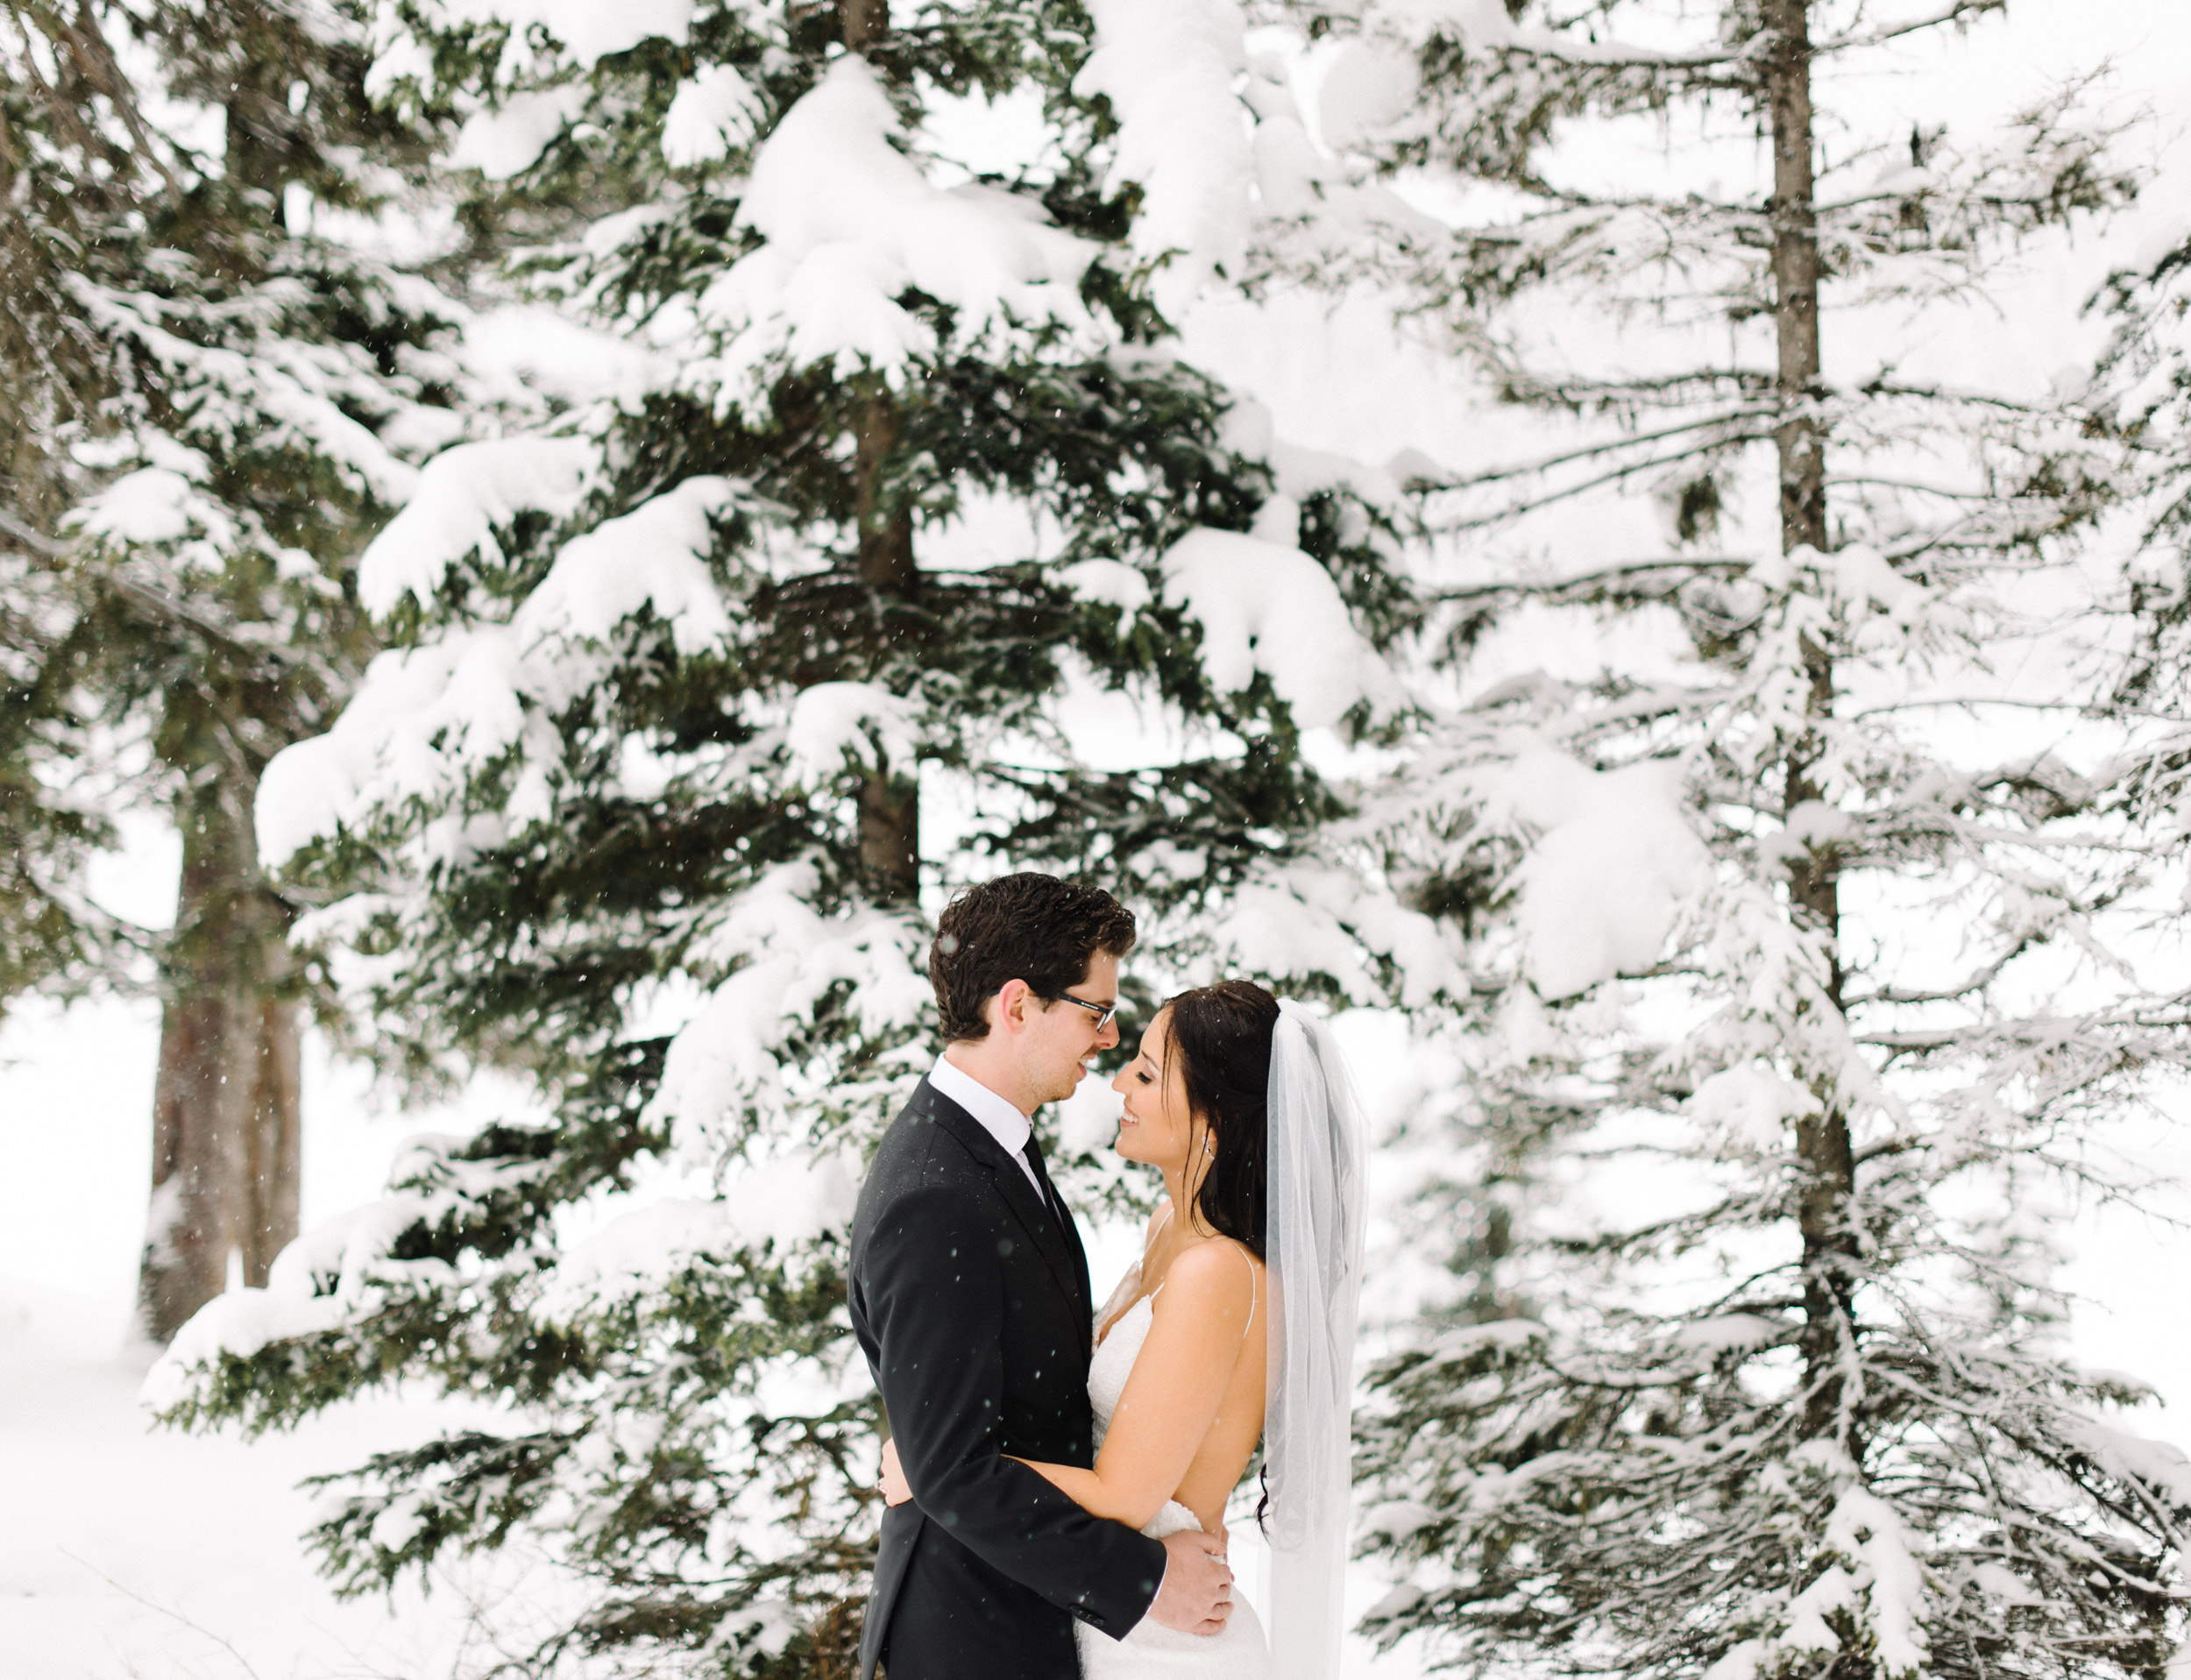 026-lake_louise_elopement.jpg